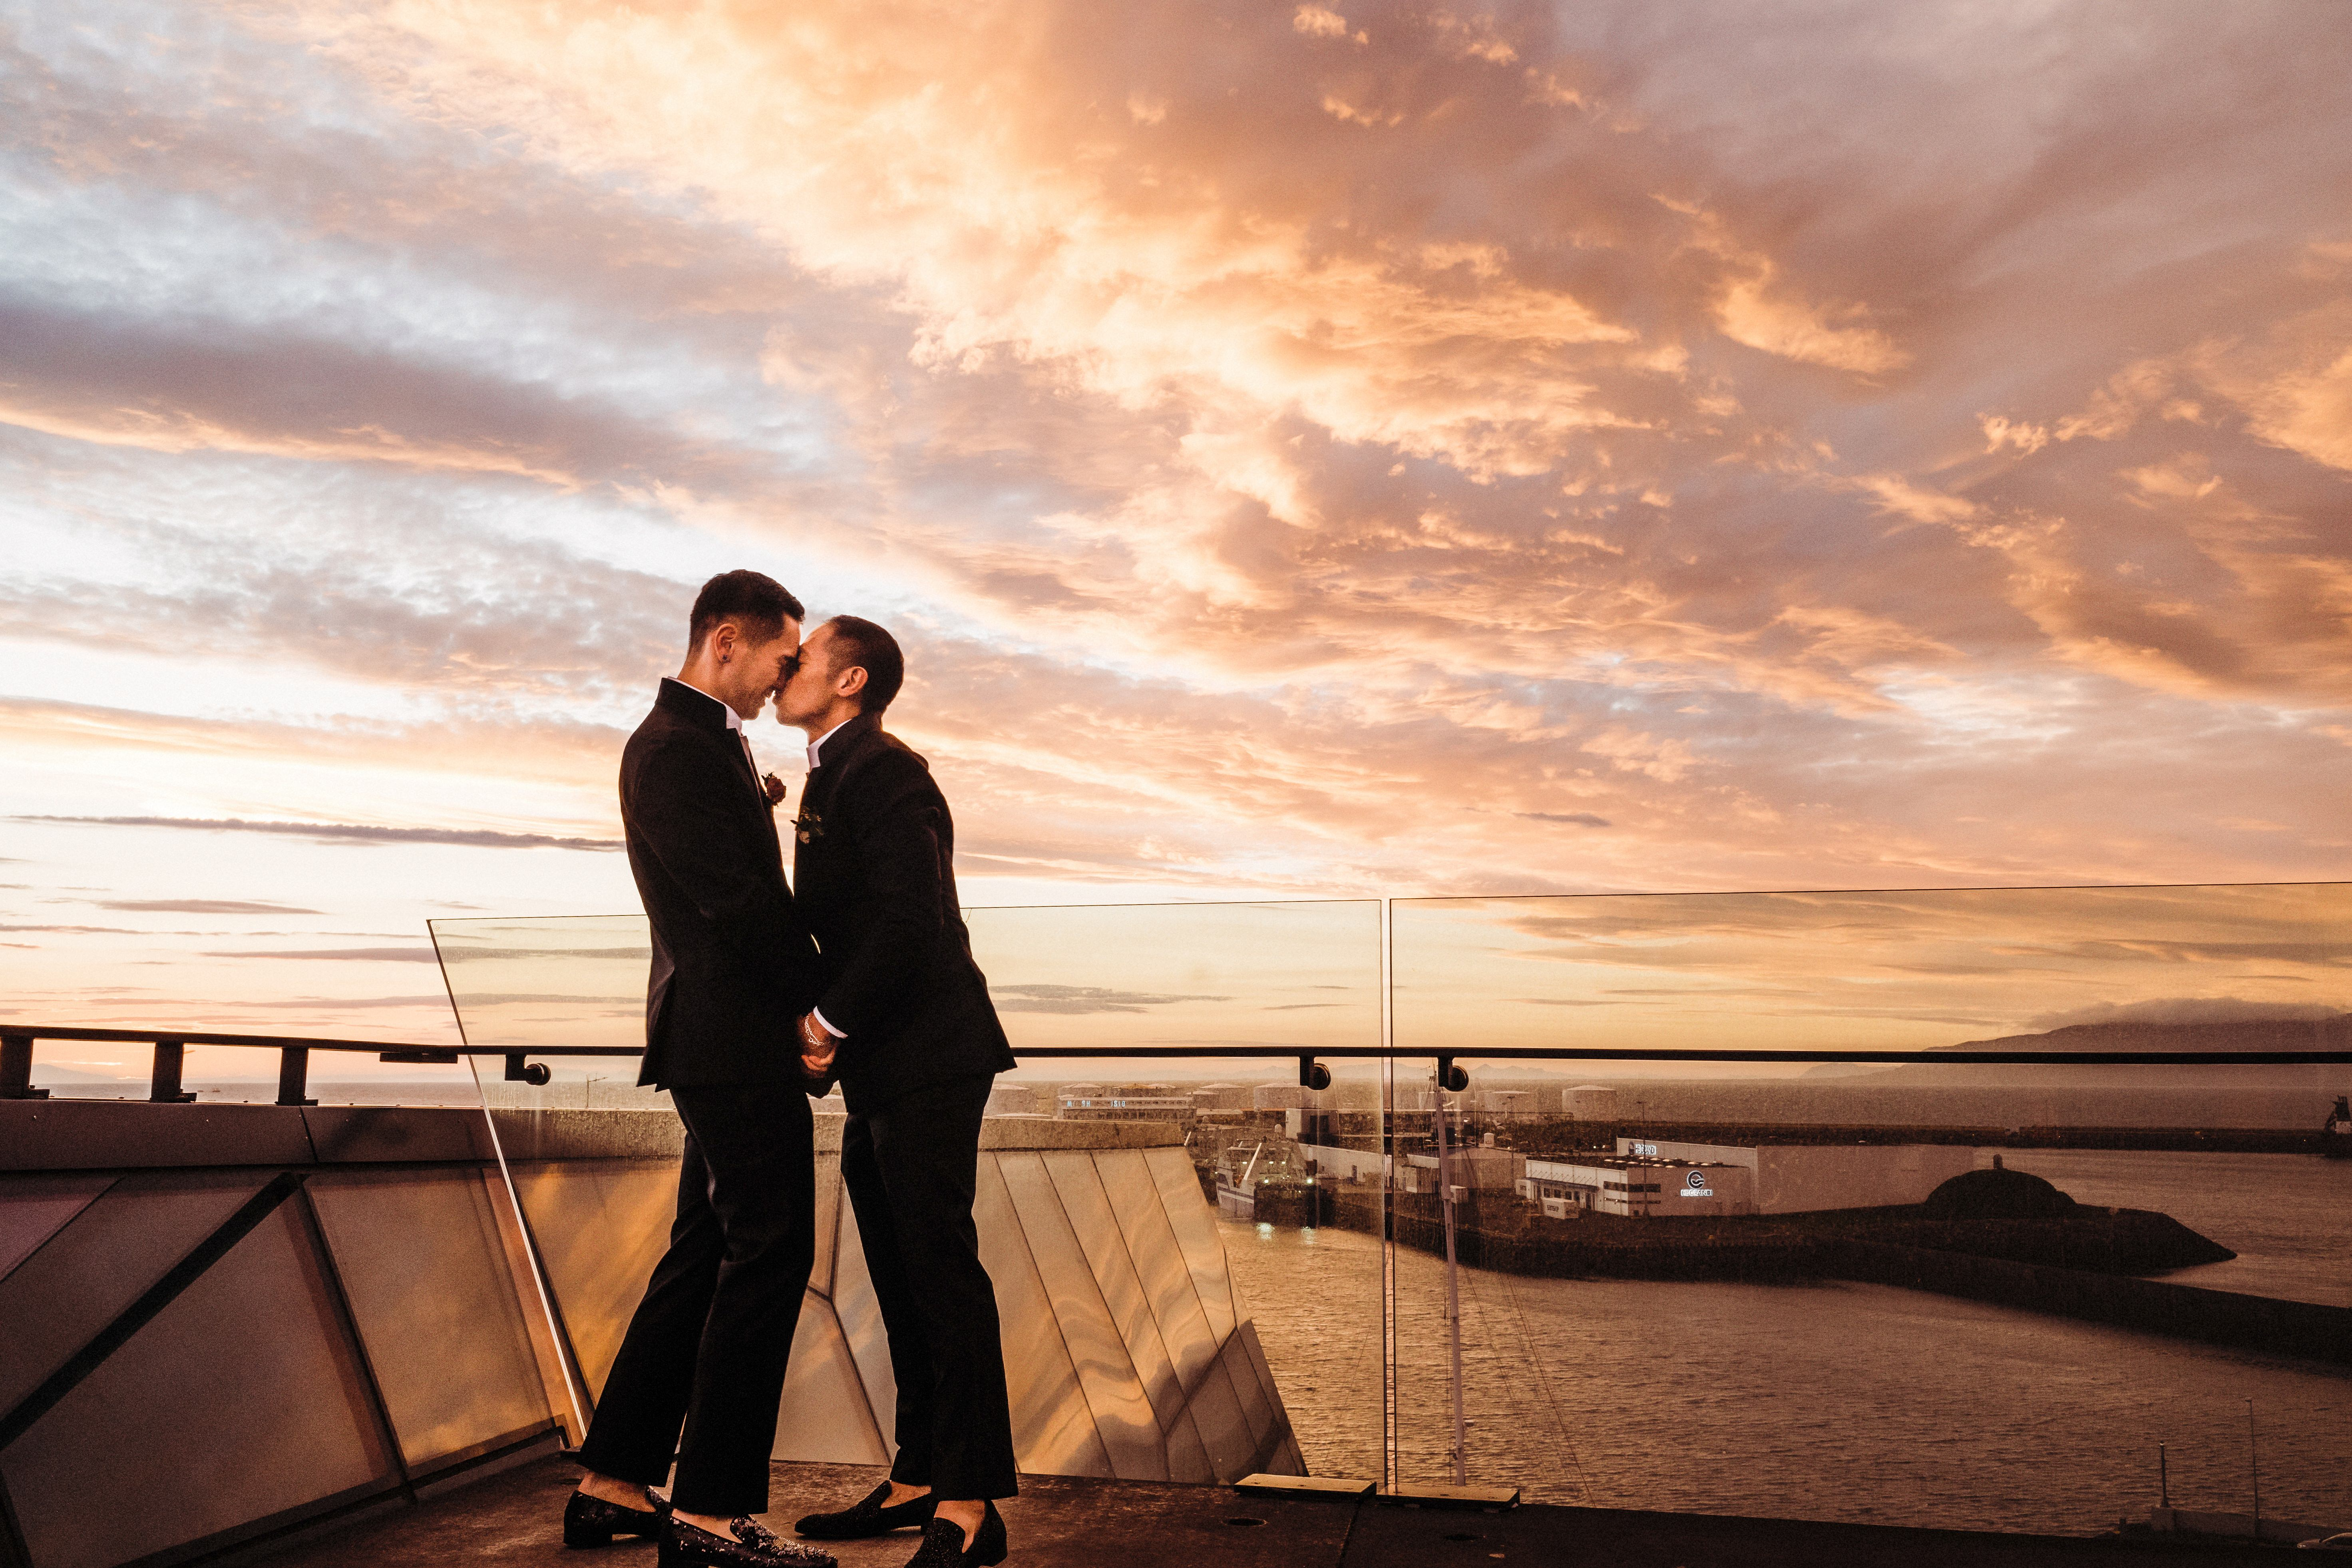 gay-wedding-in-iceland-pink-iceland-541.